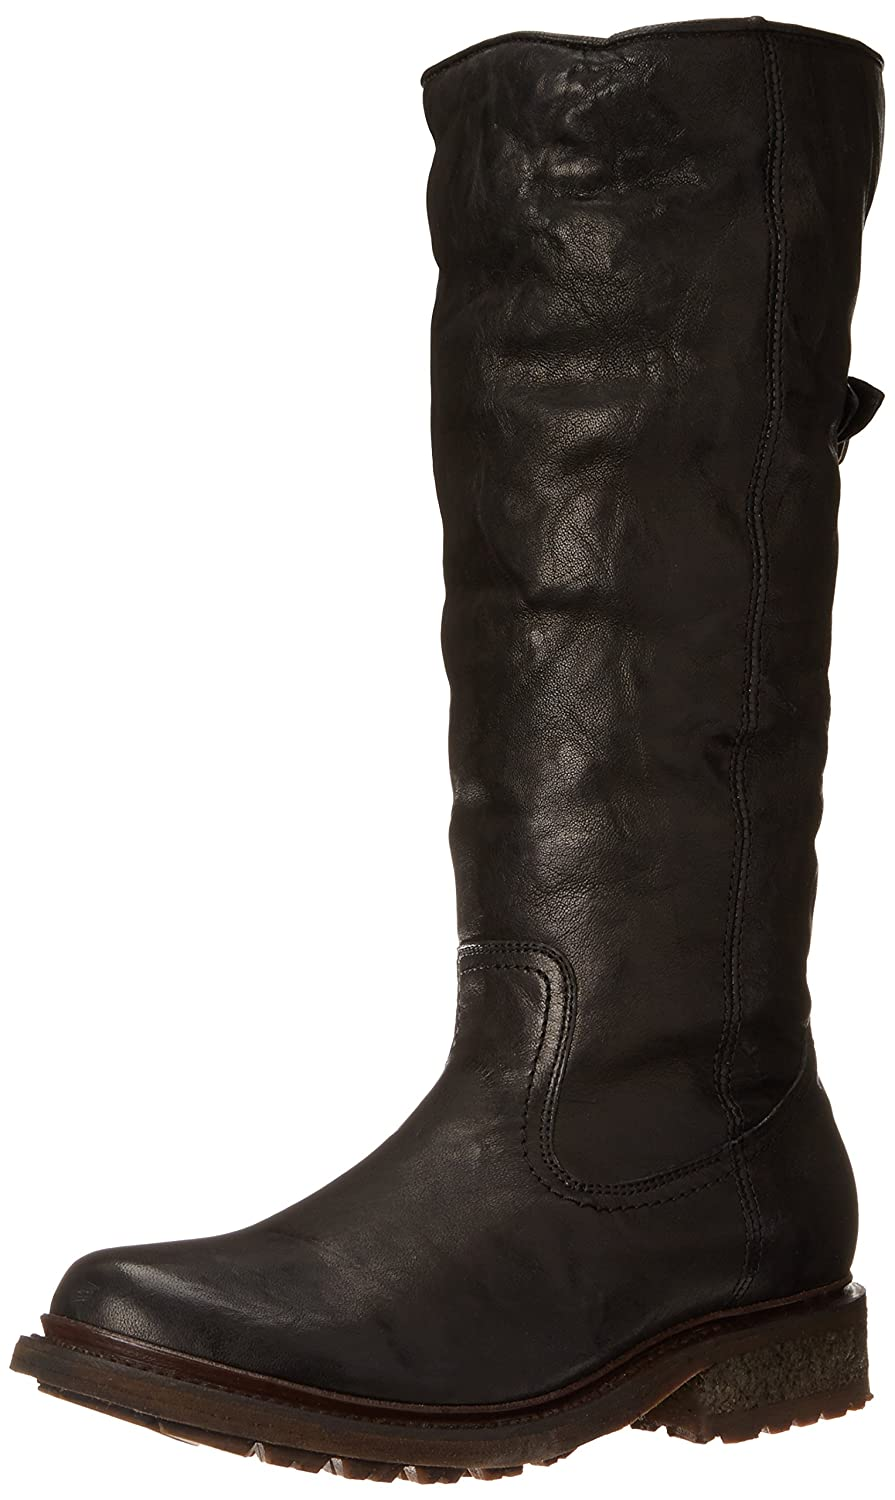 FRYE Women's Valerie Sherling Pull-On Riding Boot B00IMJLOW4 8.5 B(M) US|Black-75007